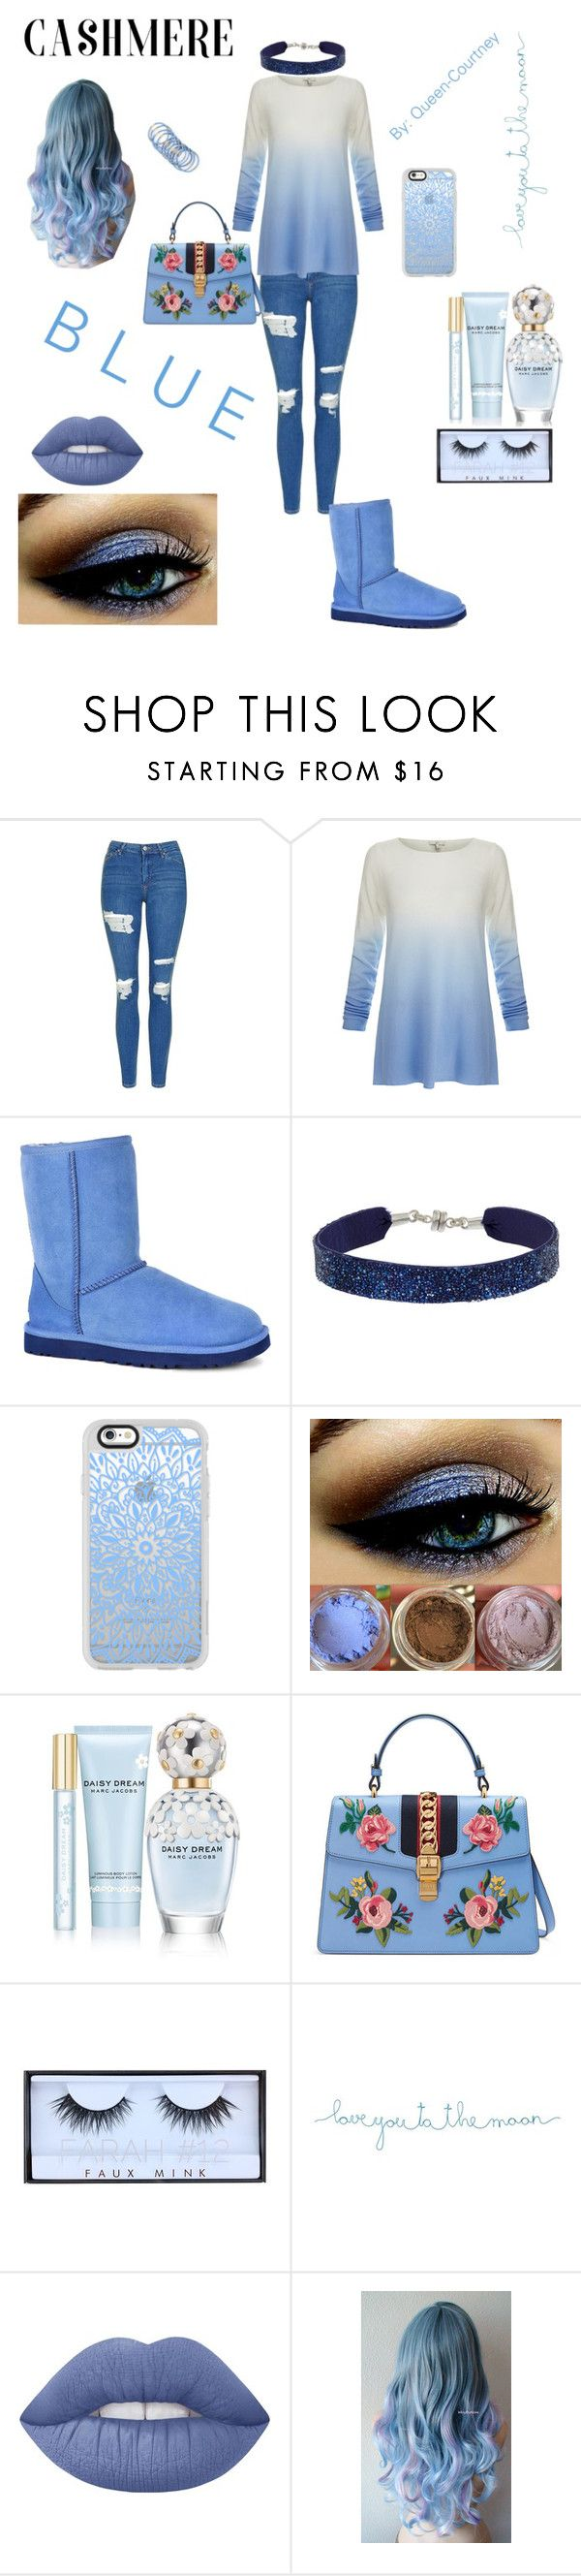 """""""B L U E// Cashmere Sweater Entry"""" by queen-courtney ❤ liked on Polyvore featuring Topshop, Joie, UGG Australia, She.Rise, Casetify, Marc Jacobs, Gucci, Huda Beauty, Natural Life and Lime Crime"""